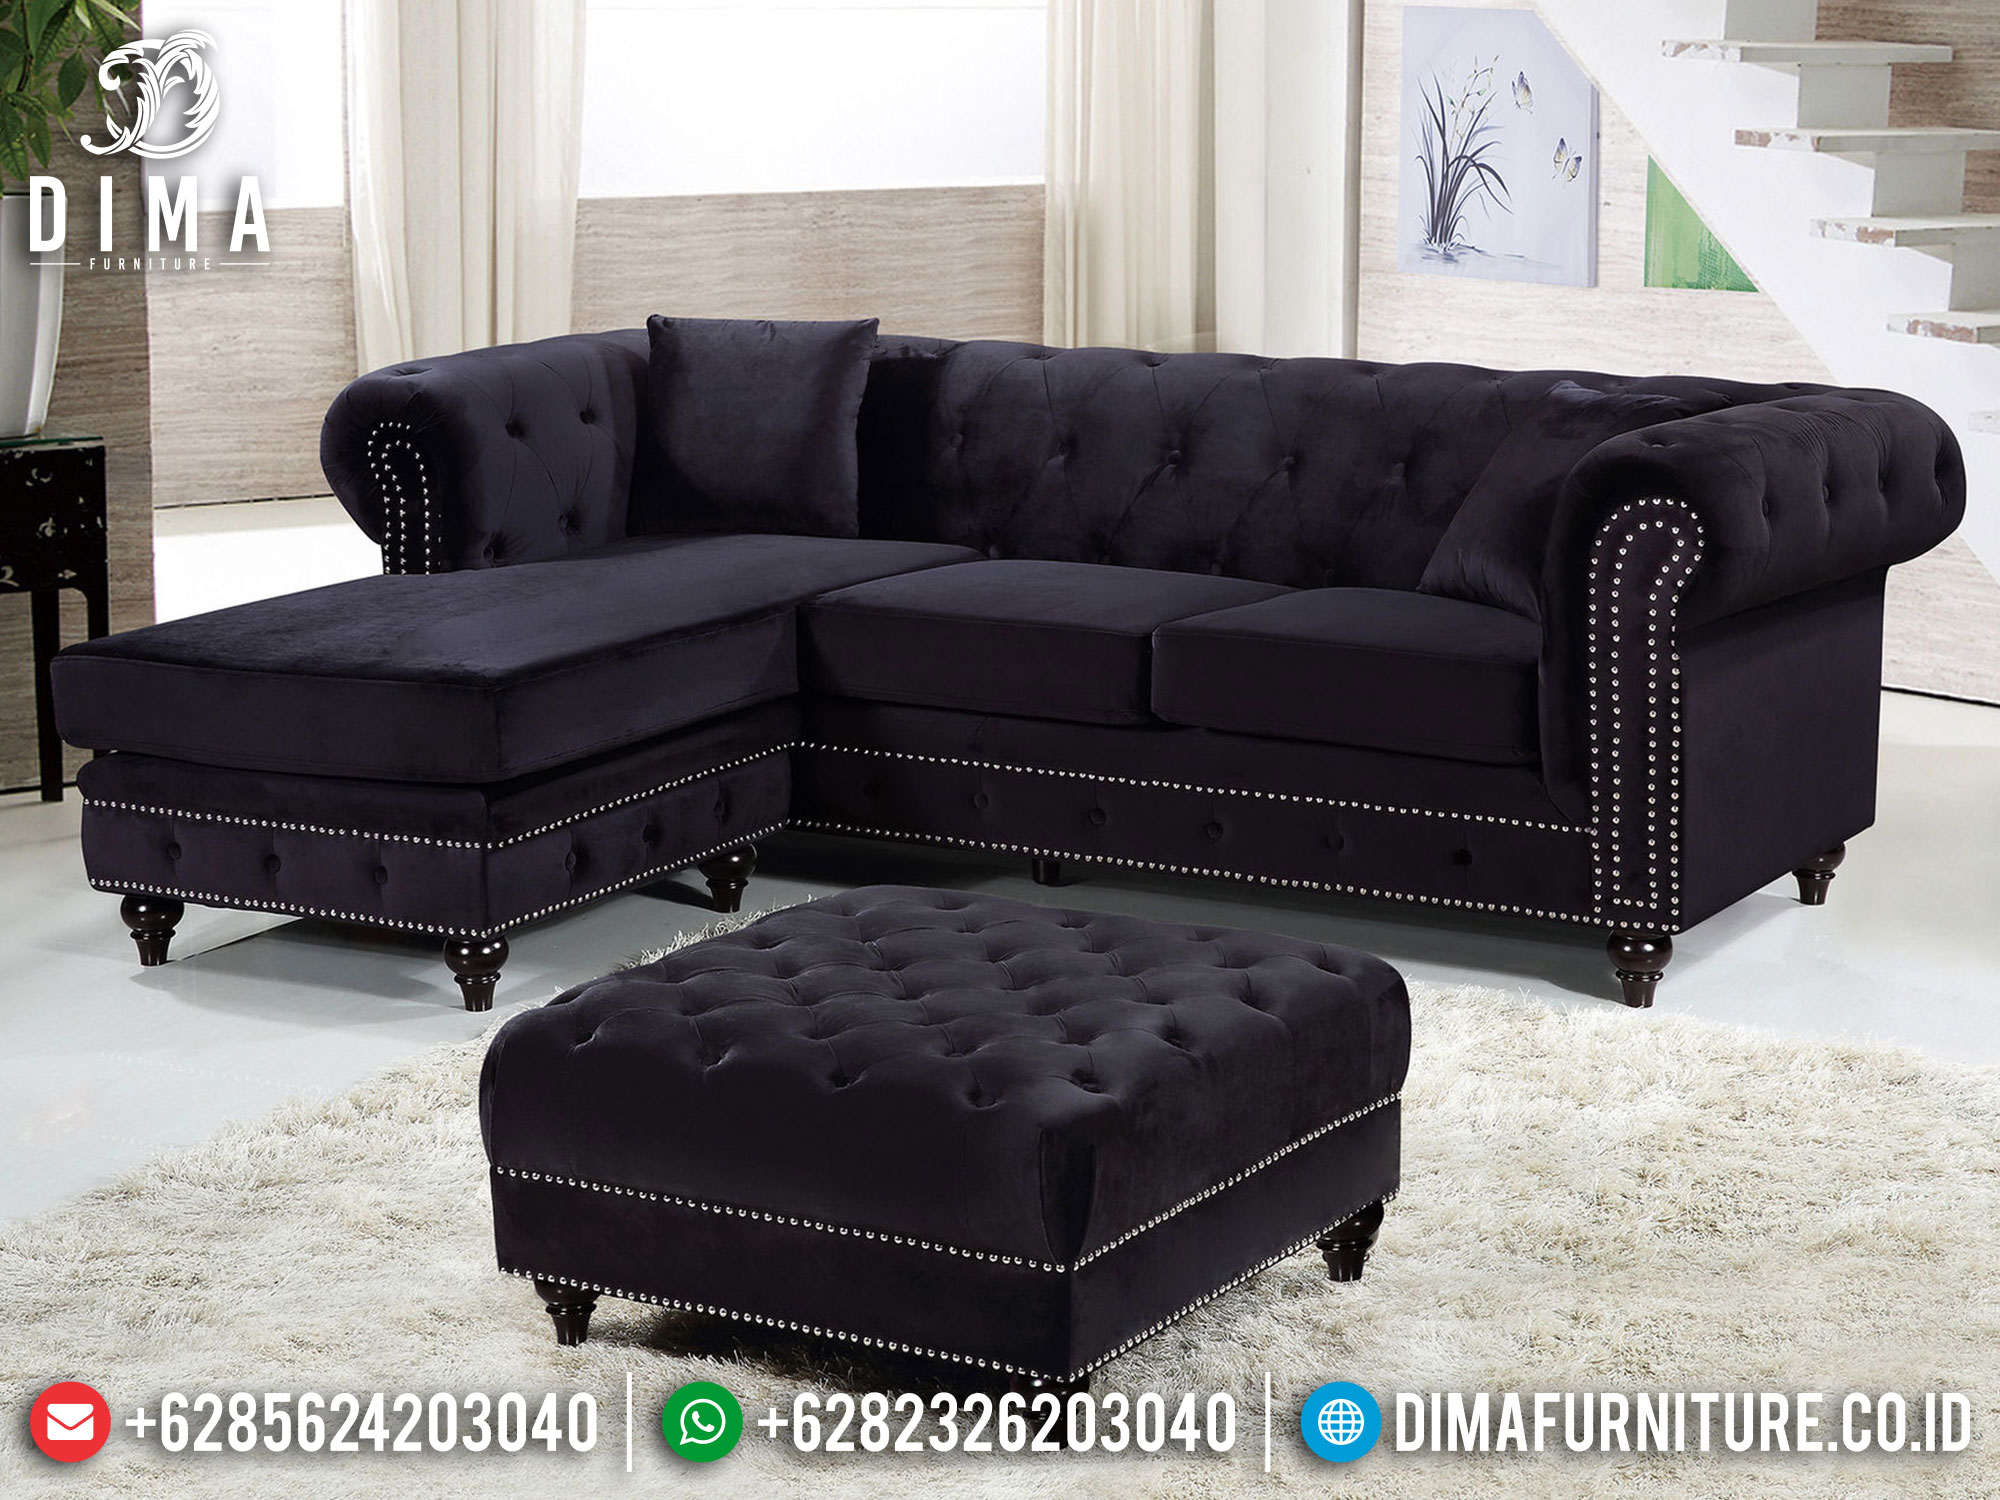 Jual Sofa Tamu Minimalis Terbaru Furniture Jepara Luxury New Design ST-1265